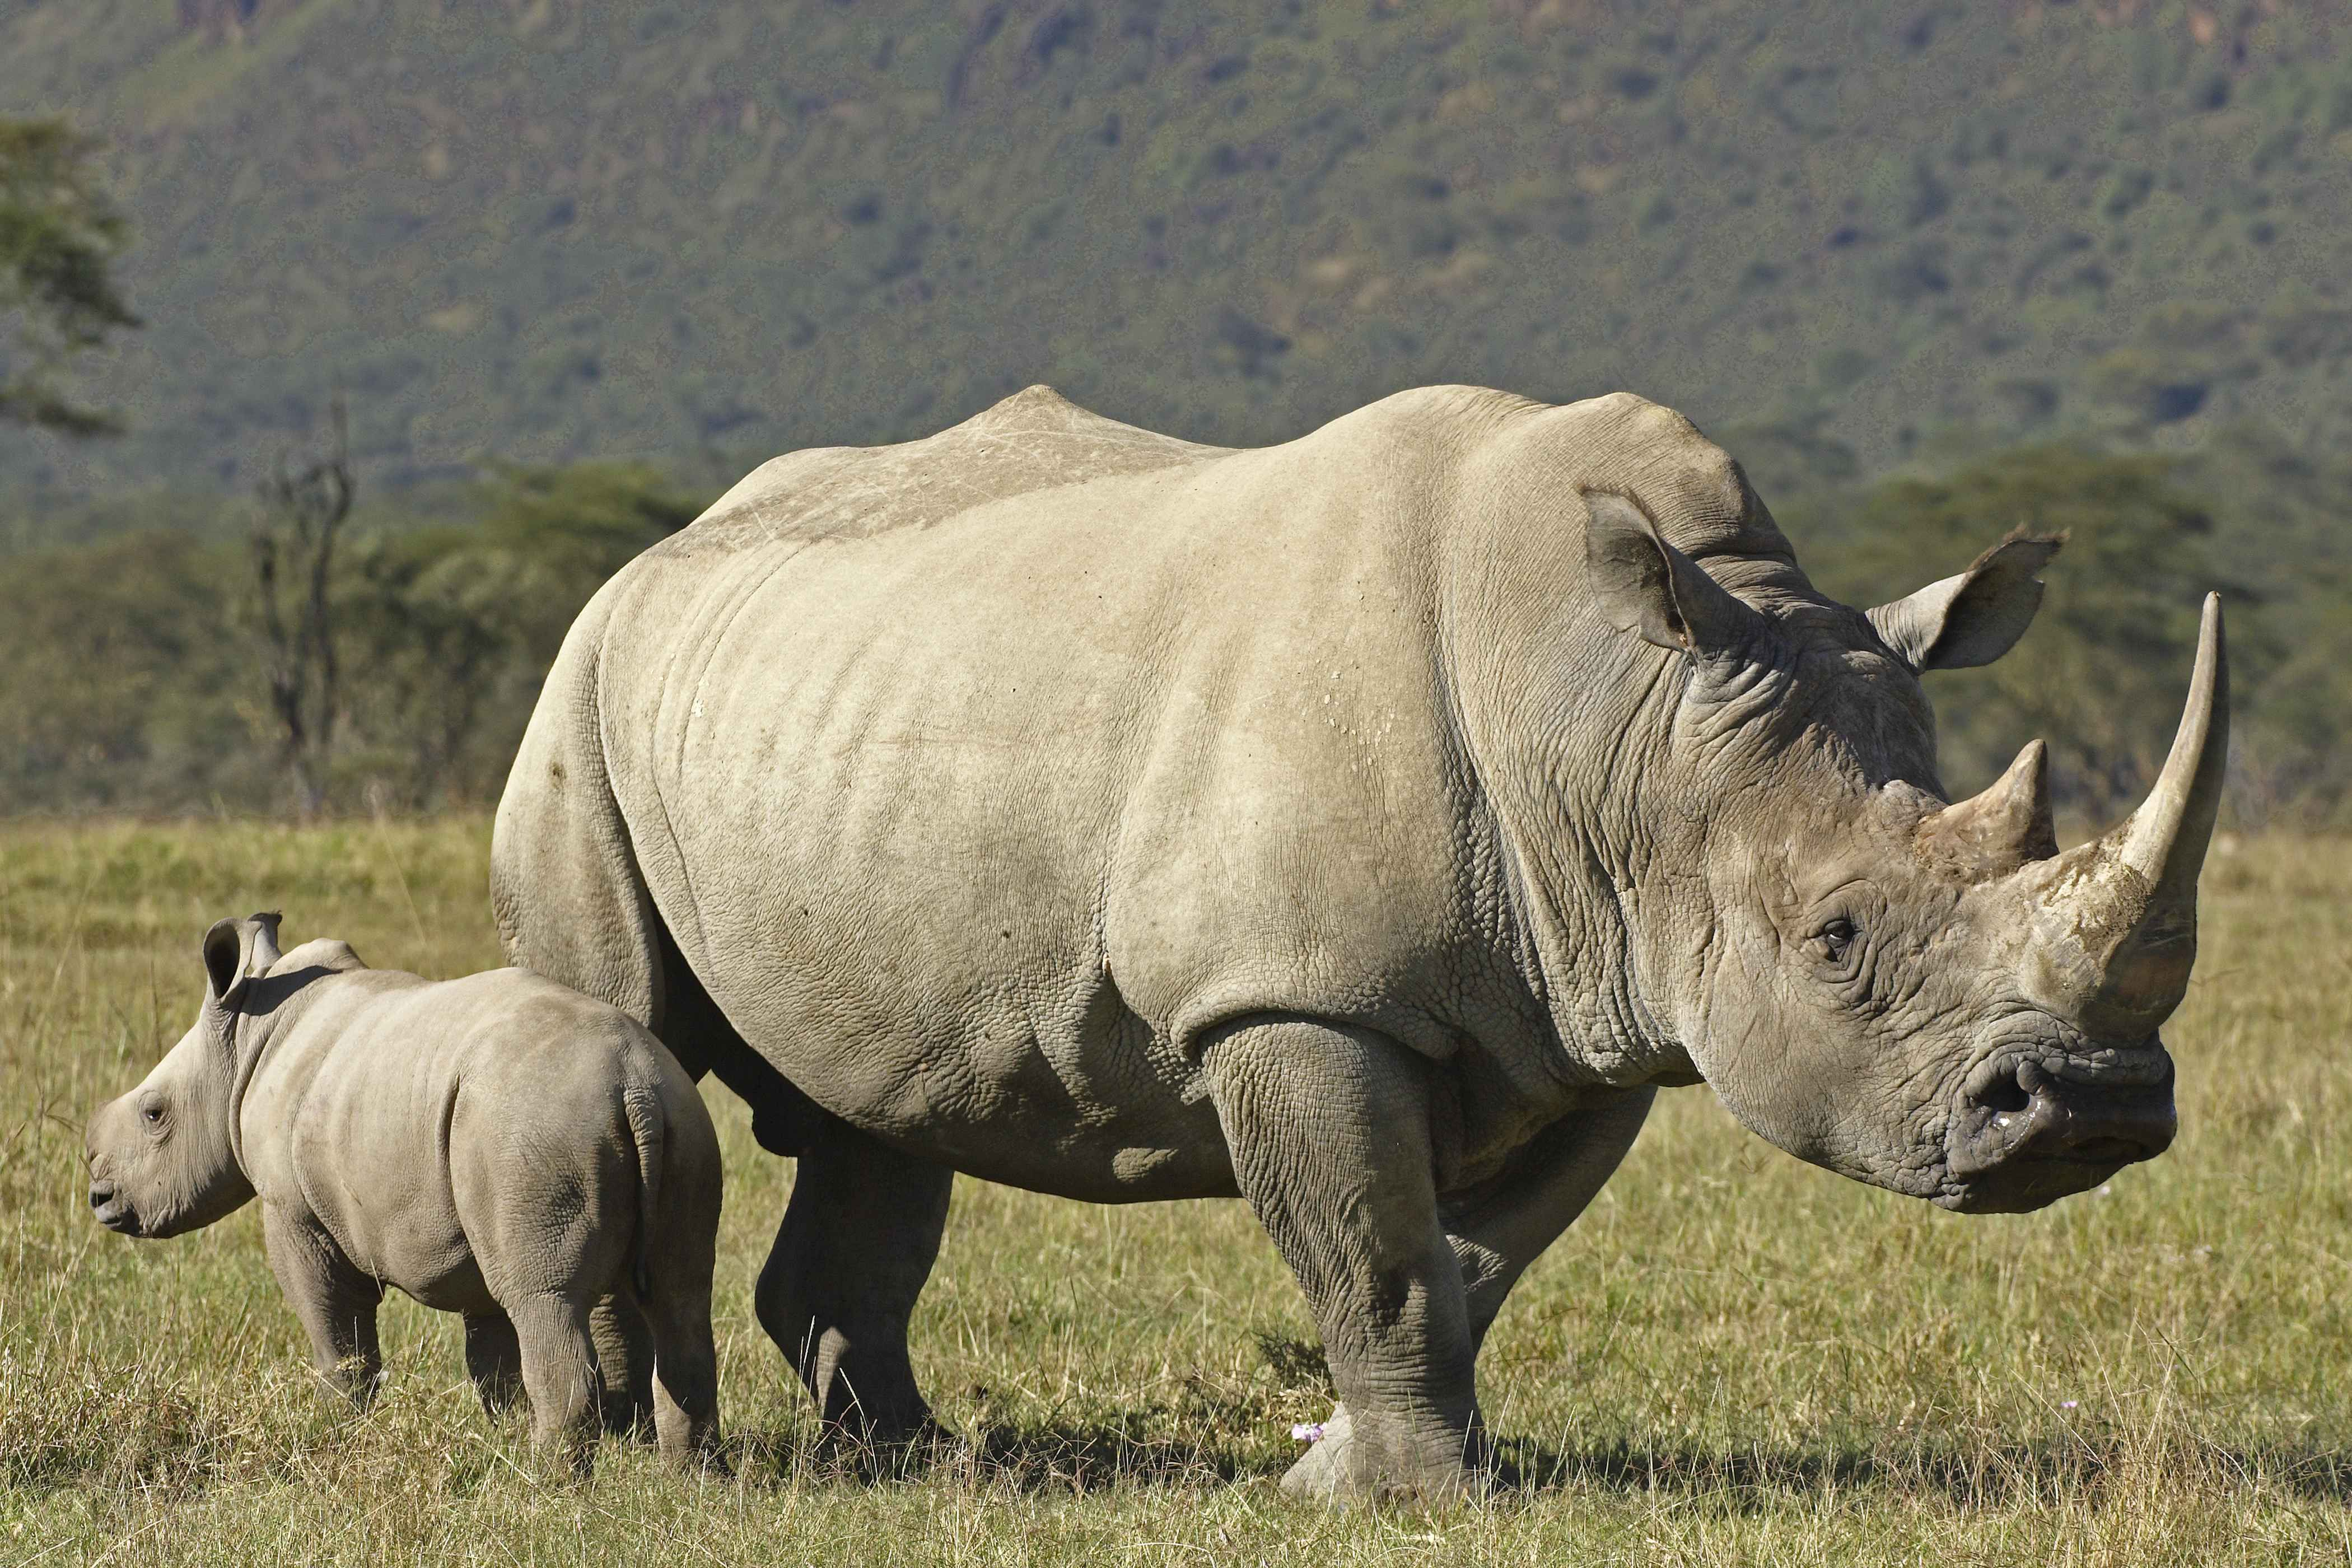 Rhino Full HD Wallpapers and Backgrounds Image